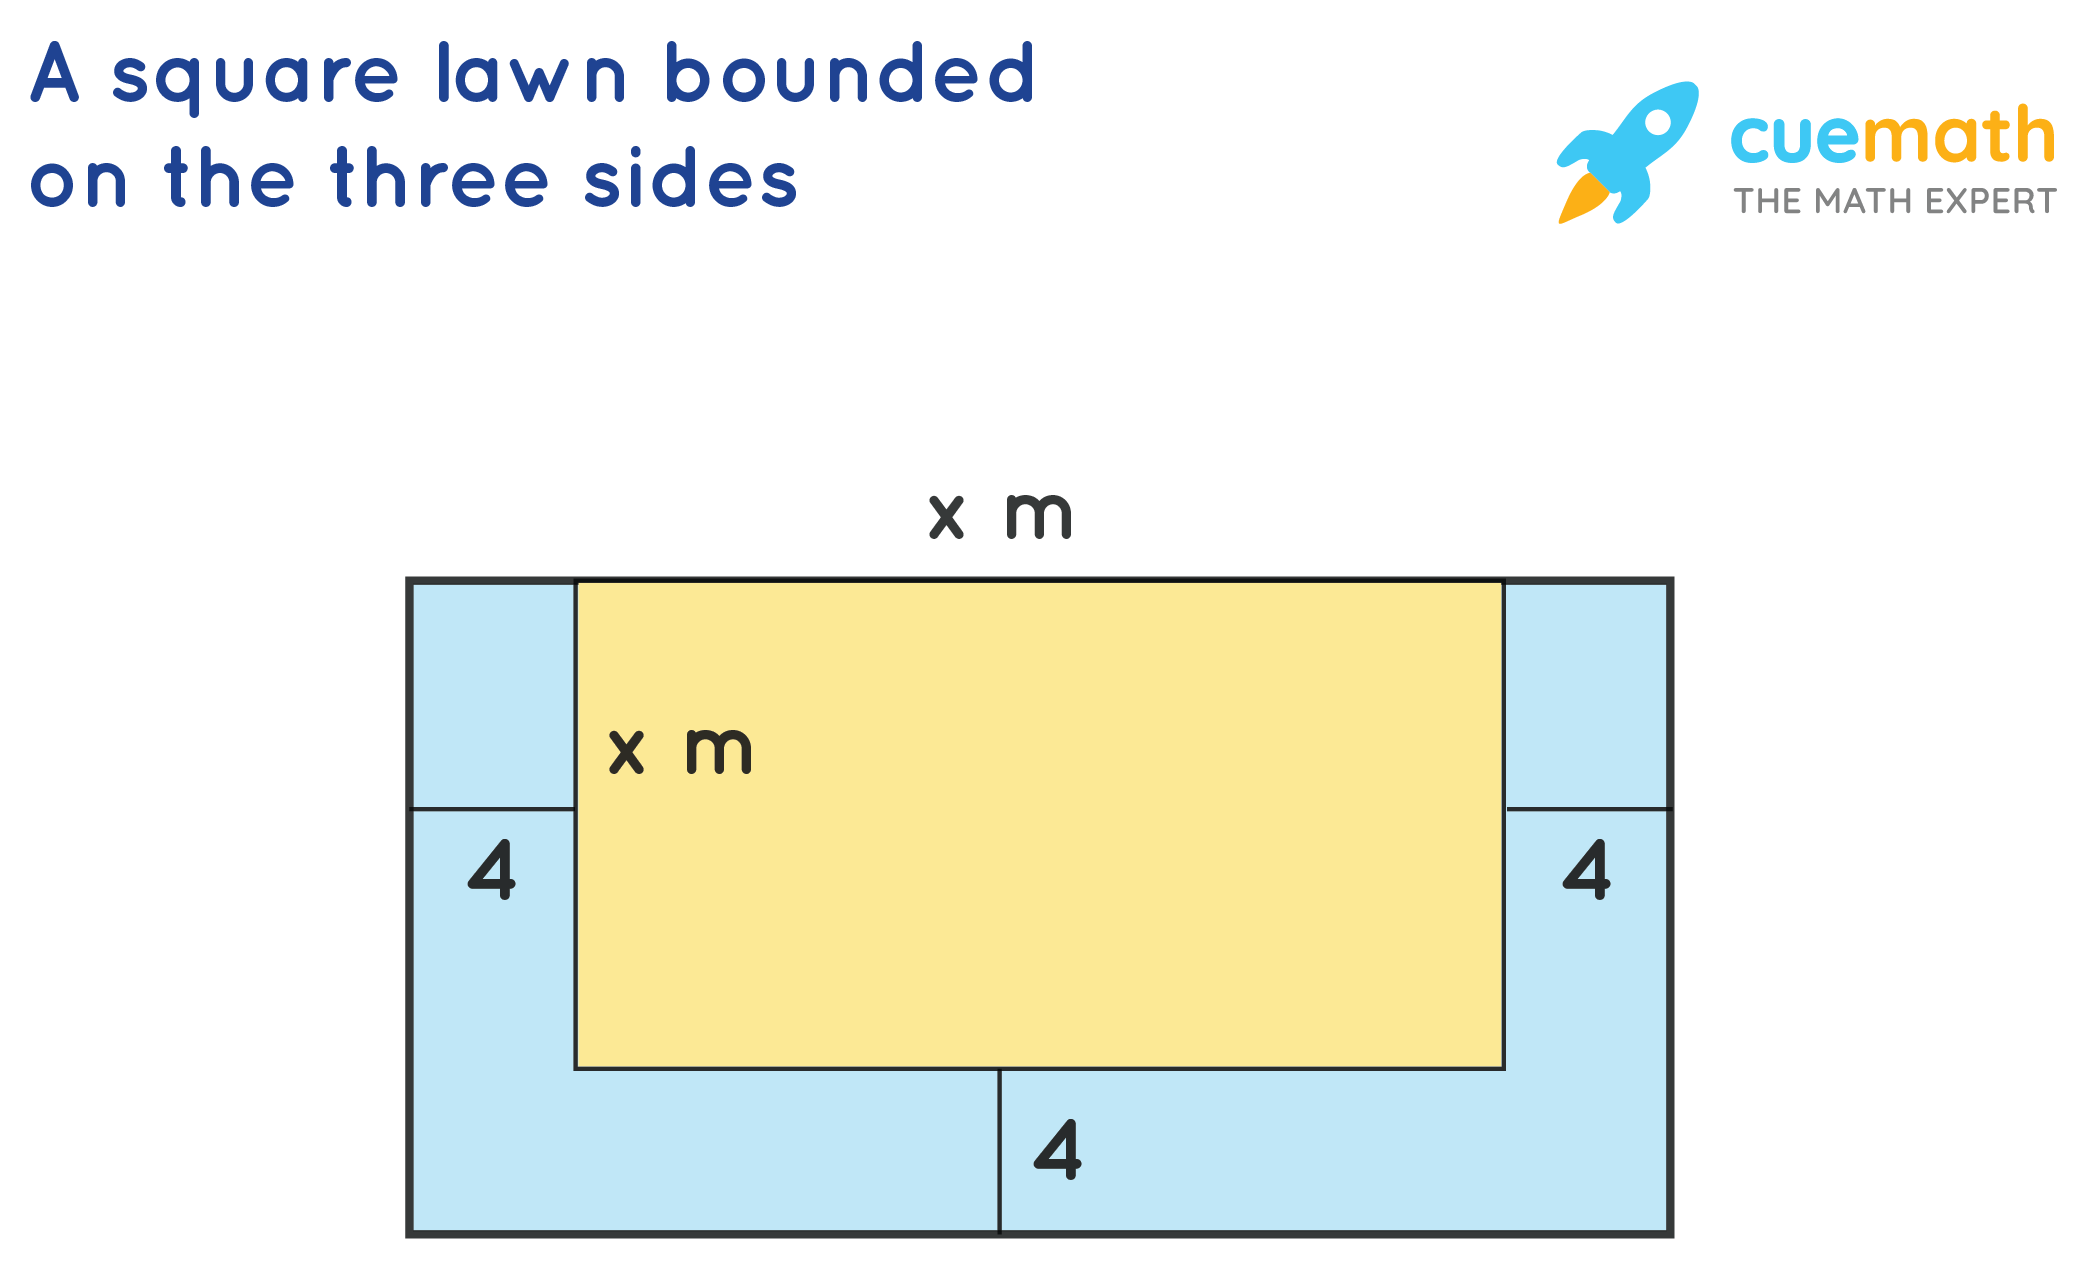 A square lawn bounded on the three sides